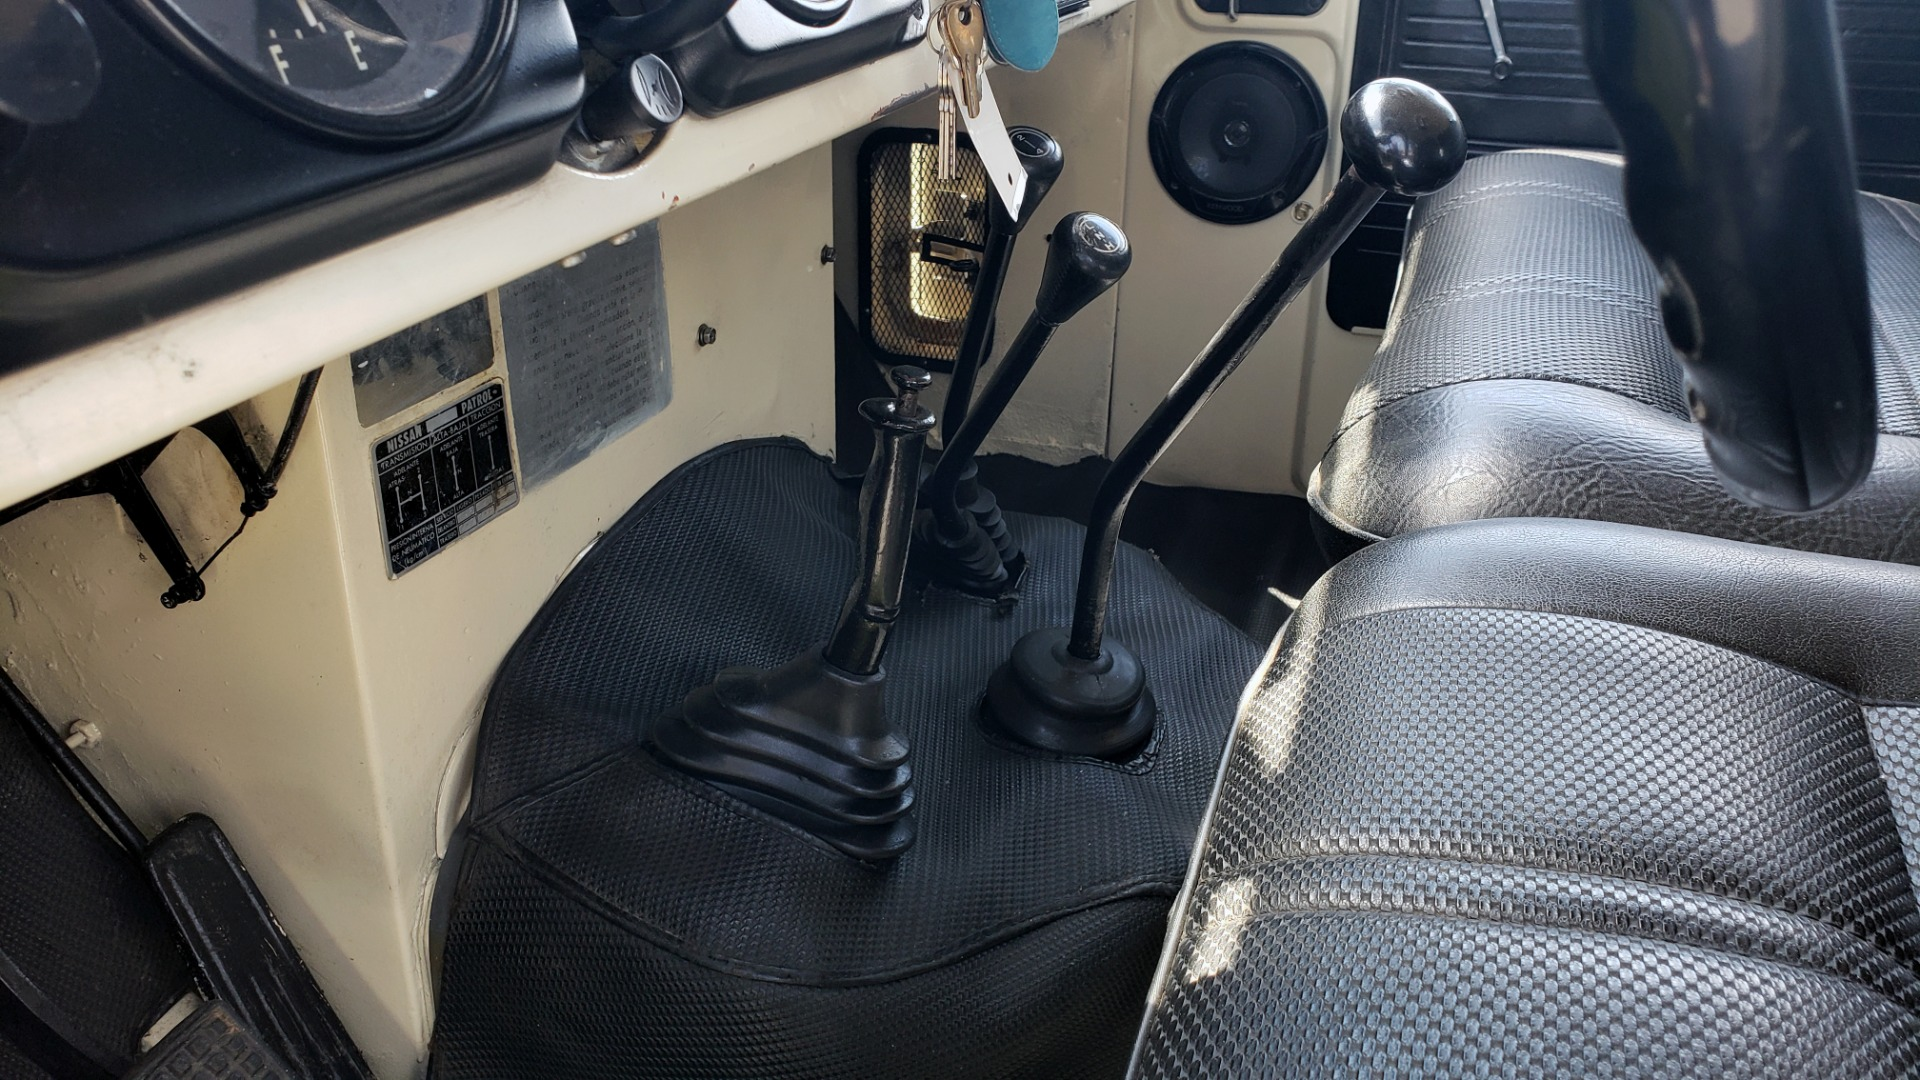 Used 1978 Nissan PATROL 4x4 / SOFT-TOP / 6-CYL / MANUAL / SEATS-9 / FULLY RESTORED for sale $32,400 at Formula Imports in Charlotte NC 28227 62